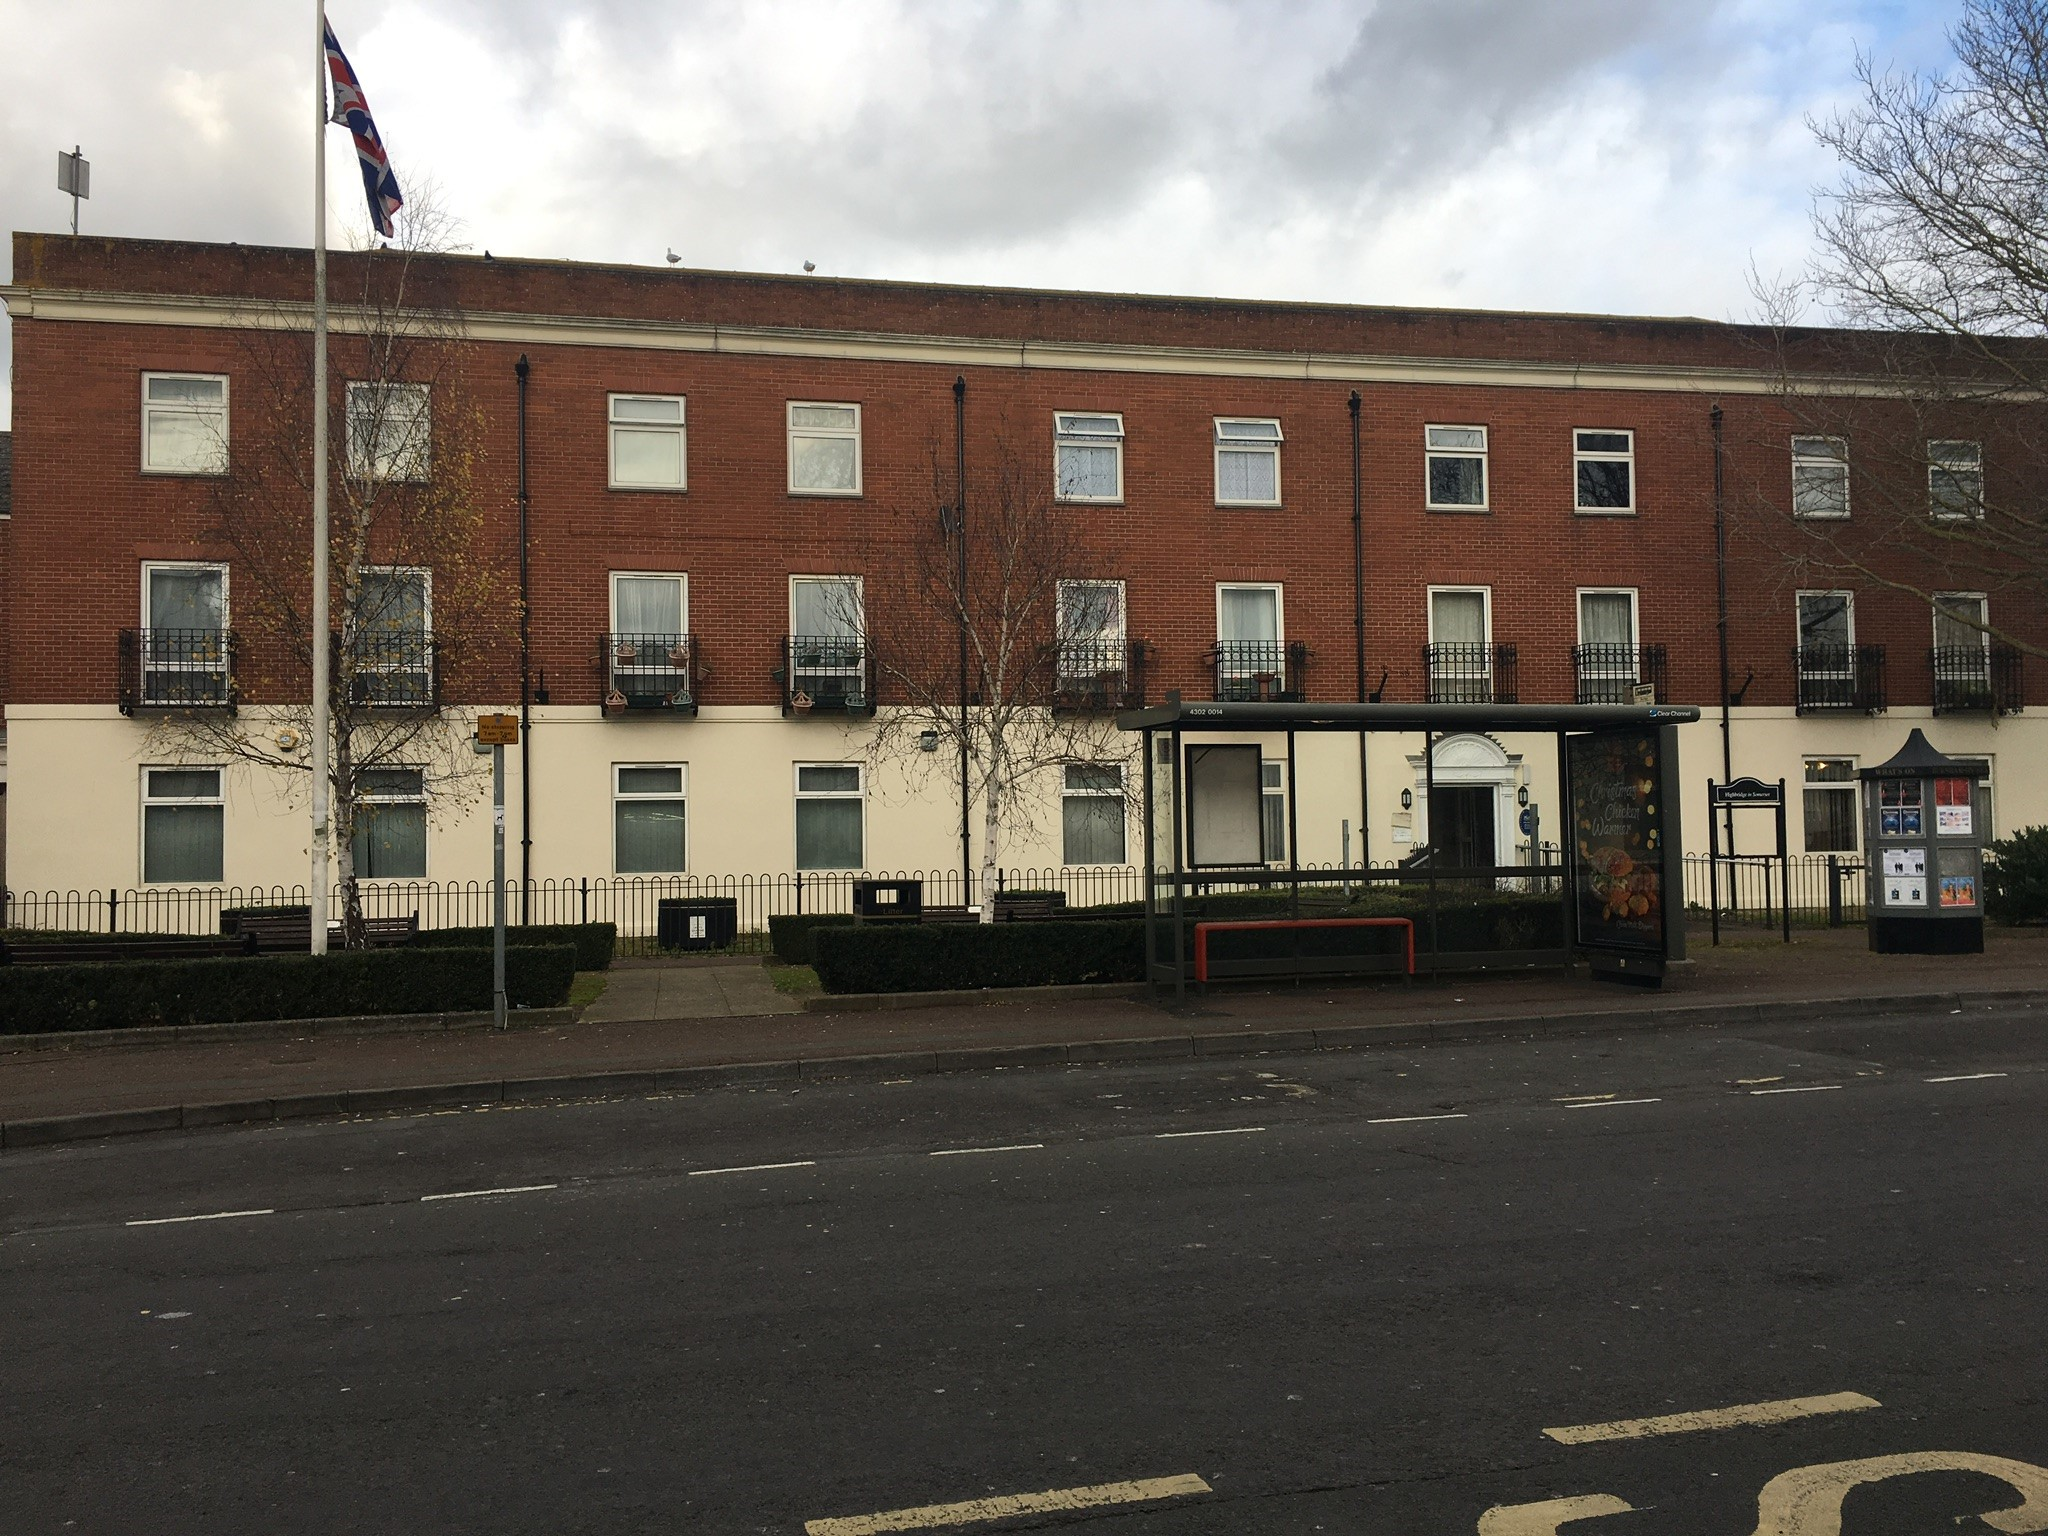 Sedgemoor District Council has submitted plans to build five one-bedroom flats at the rear of Alpha House, in Market Street.